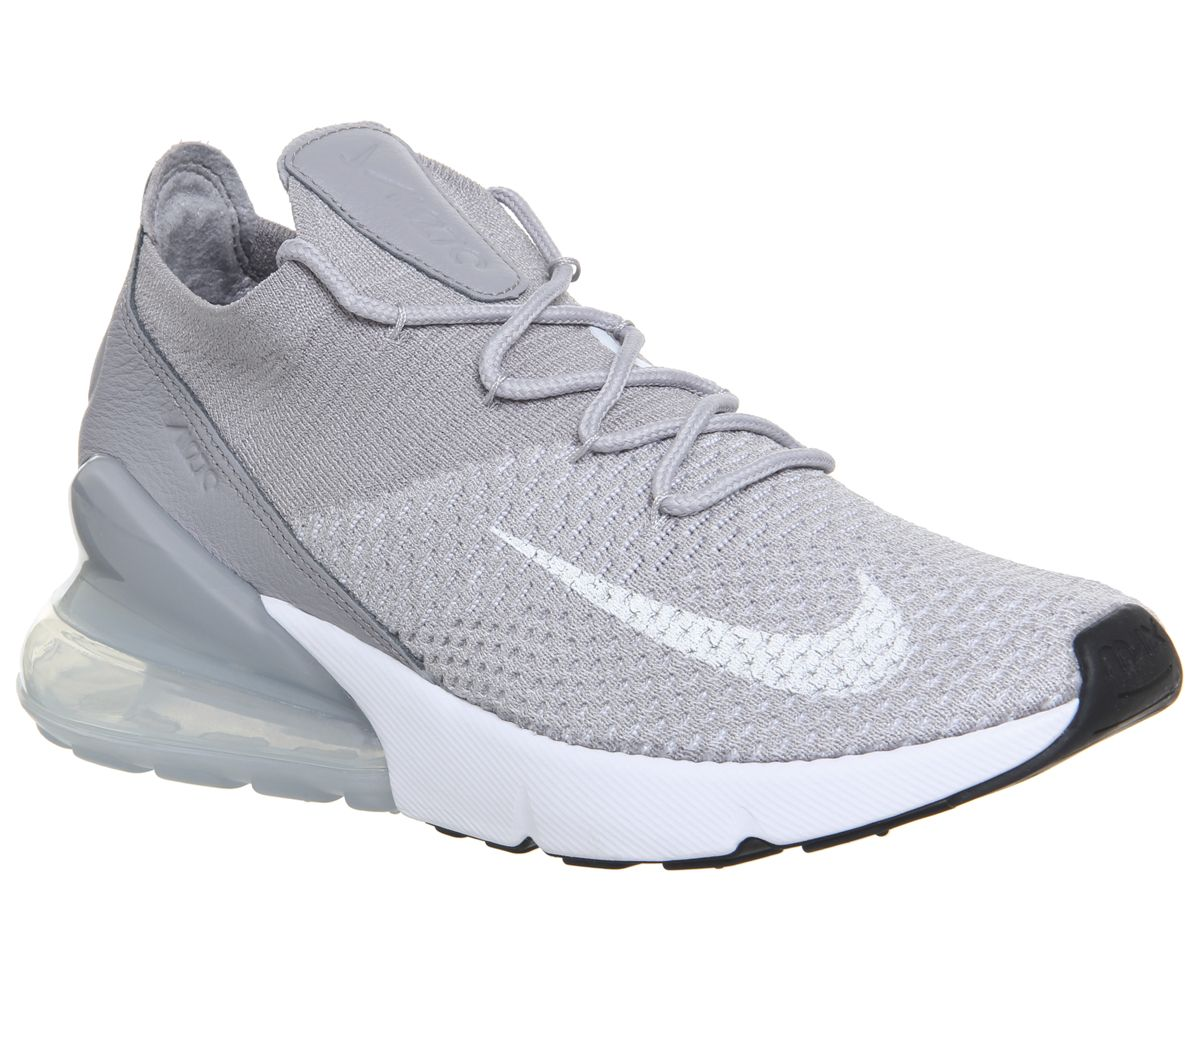 newest db9c2 3c55d Nike Air Max 270 Flyknit Trainers Atmosphere Grey White Pure ...